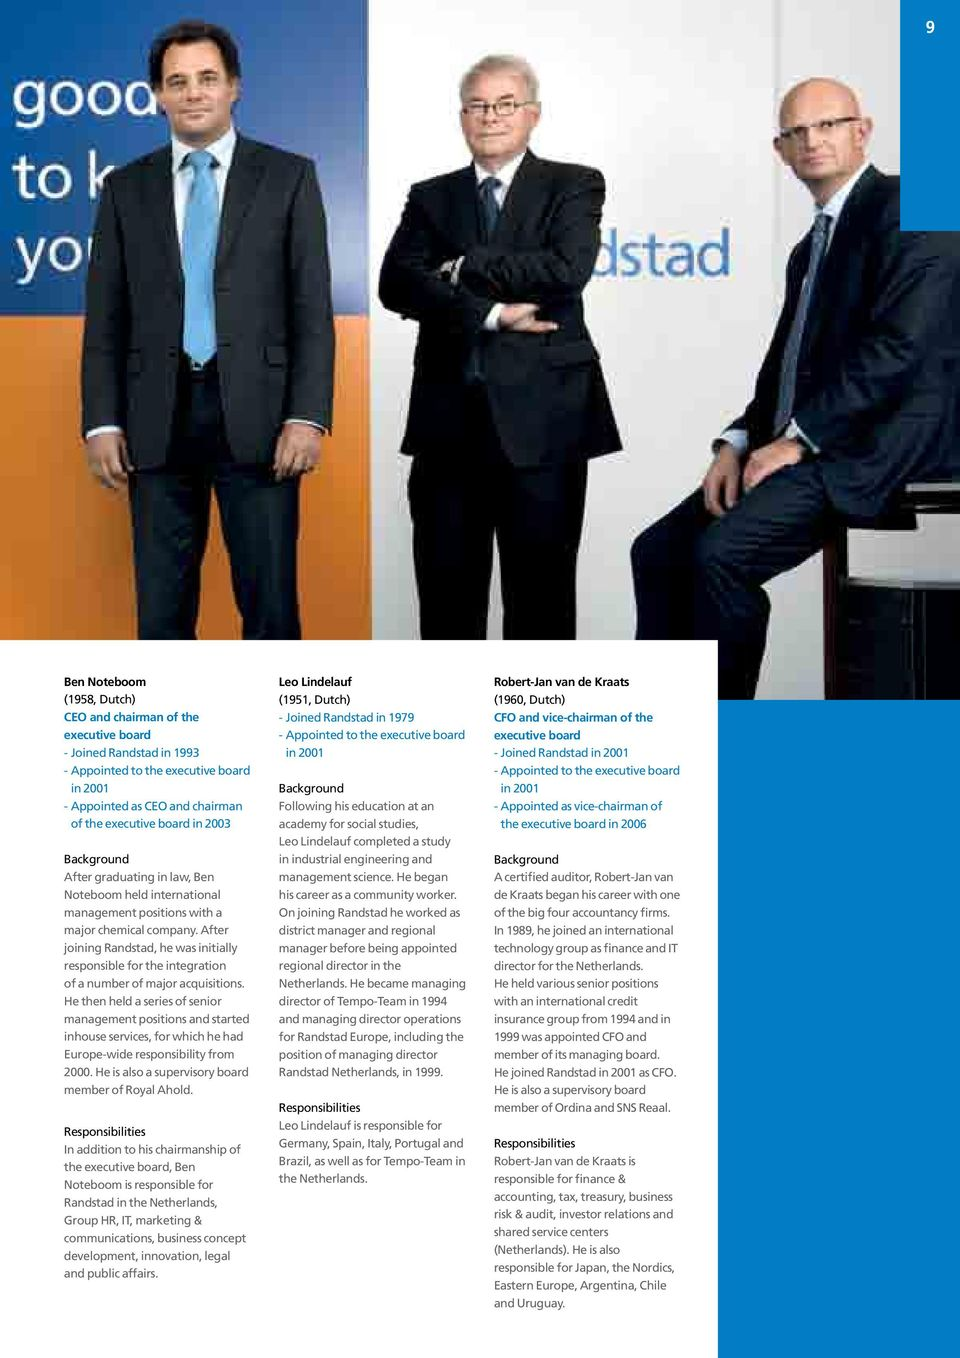 After joining Randstad, he was initially responsible for the integration of a number of major acquisitions.